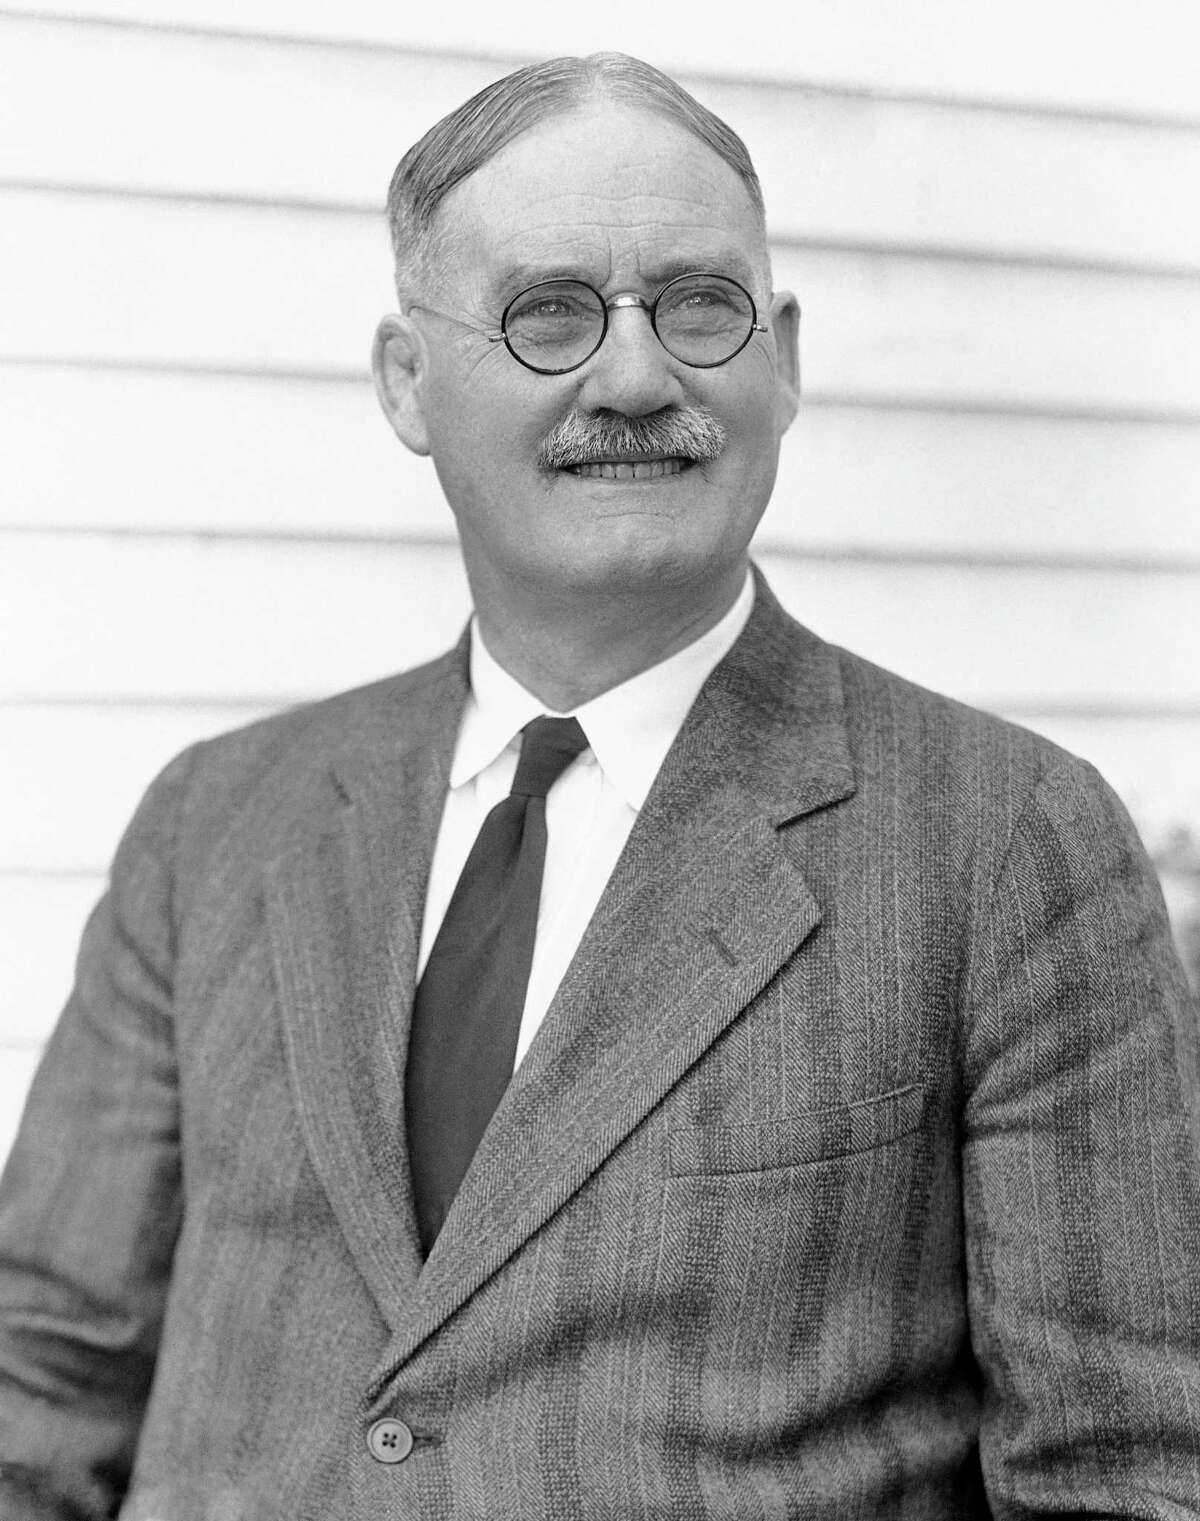 This is a 1939 file photo showing Dr. James Naismith, the inventor of basketball, in Lawrence, Kansas. A University of Kansas researcher has uncovered an audio recording of Naismith talking about setting up the first game in 1891 in Massachusetts. The school says the discovery is believed to be the only known recording of Naismith.